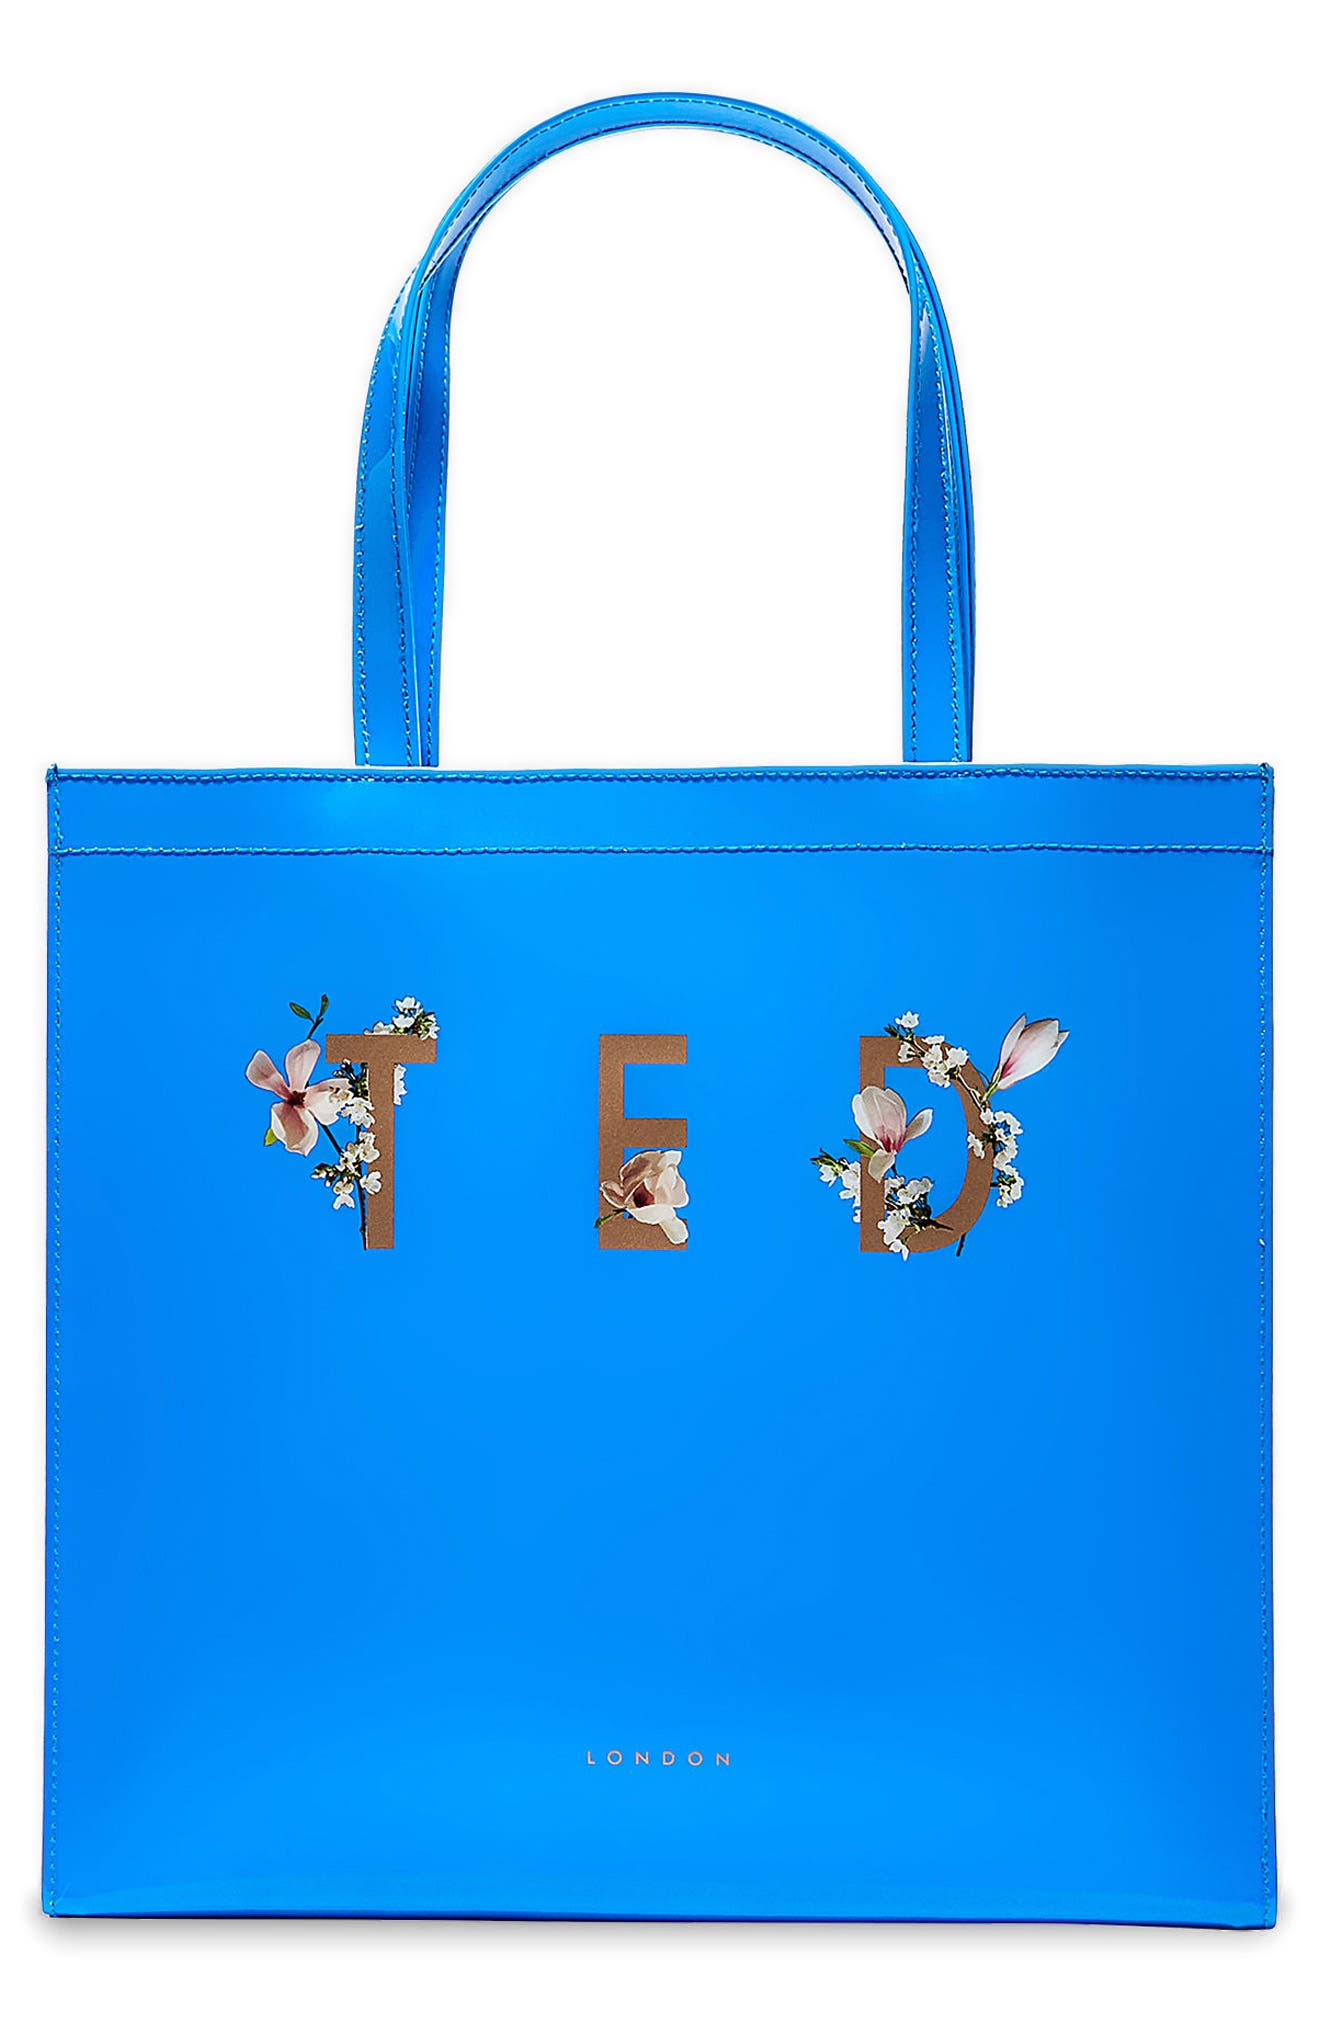 Theacon Large Icon Tote,                         Main,                         color, 430